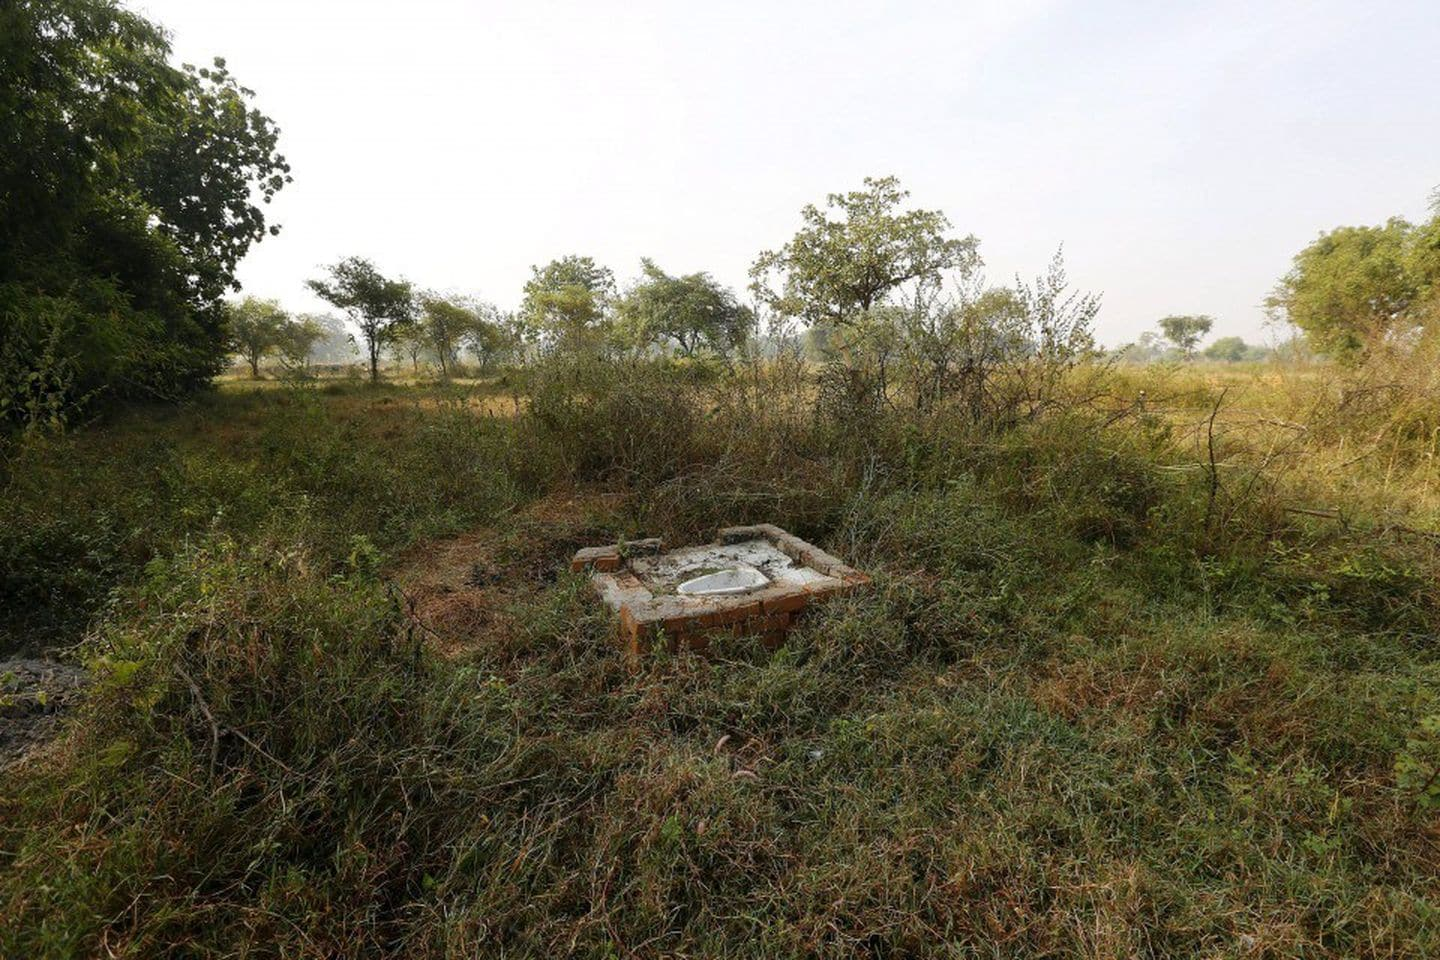 An open toilet sits in a field in Gorba in the eastern state of Chhattisgarh, India, on Nov. 16, 2015. (Adnan Abidi/Reuters)